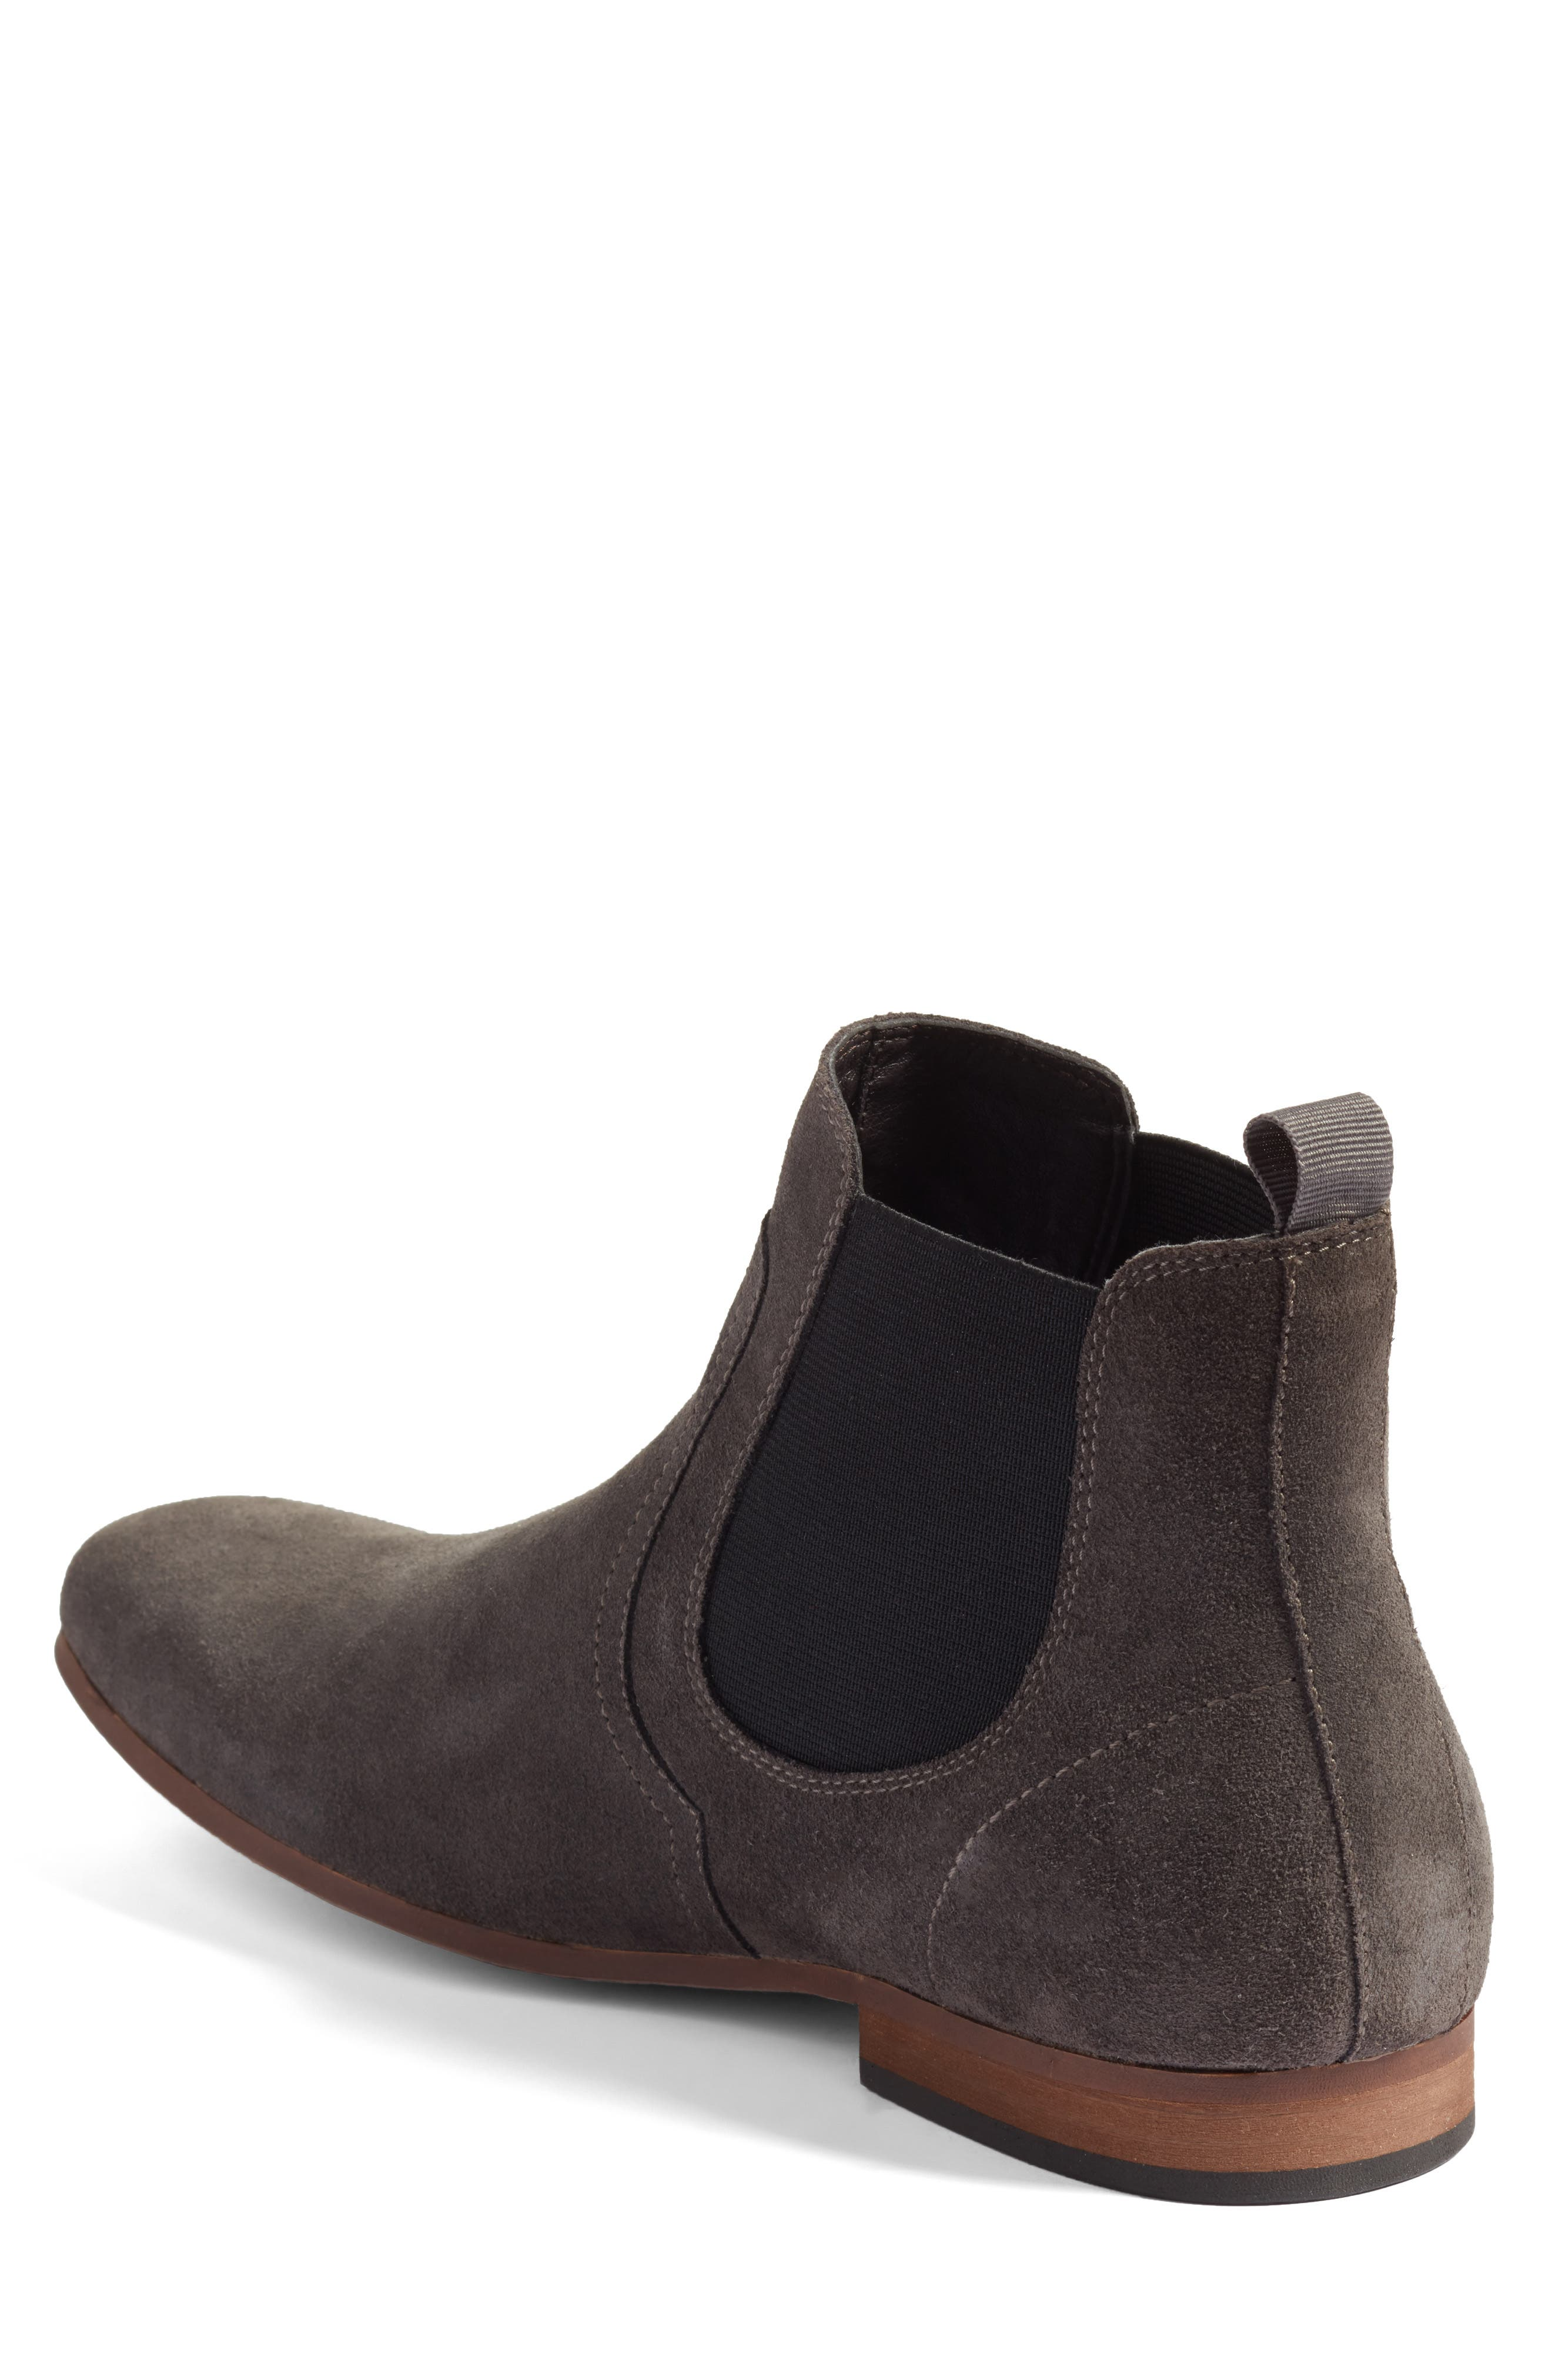 Brysen Chelsea Boot,                             Alternate thumbnail 26, color,